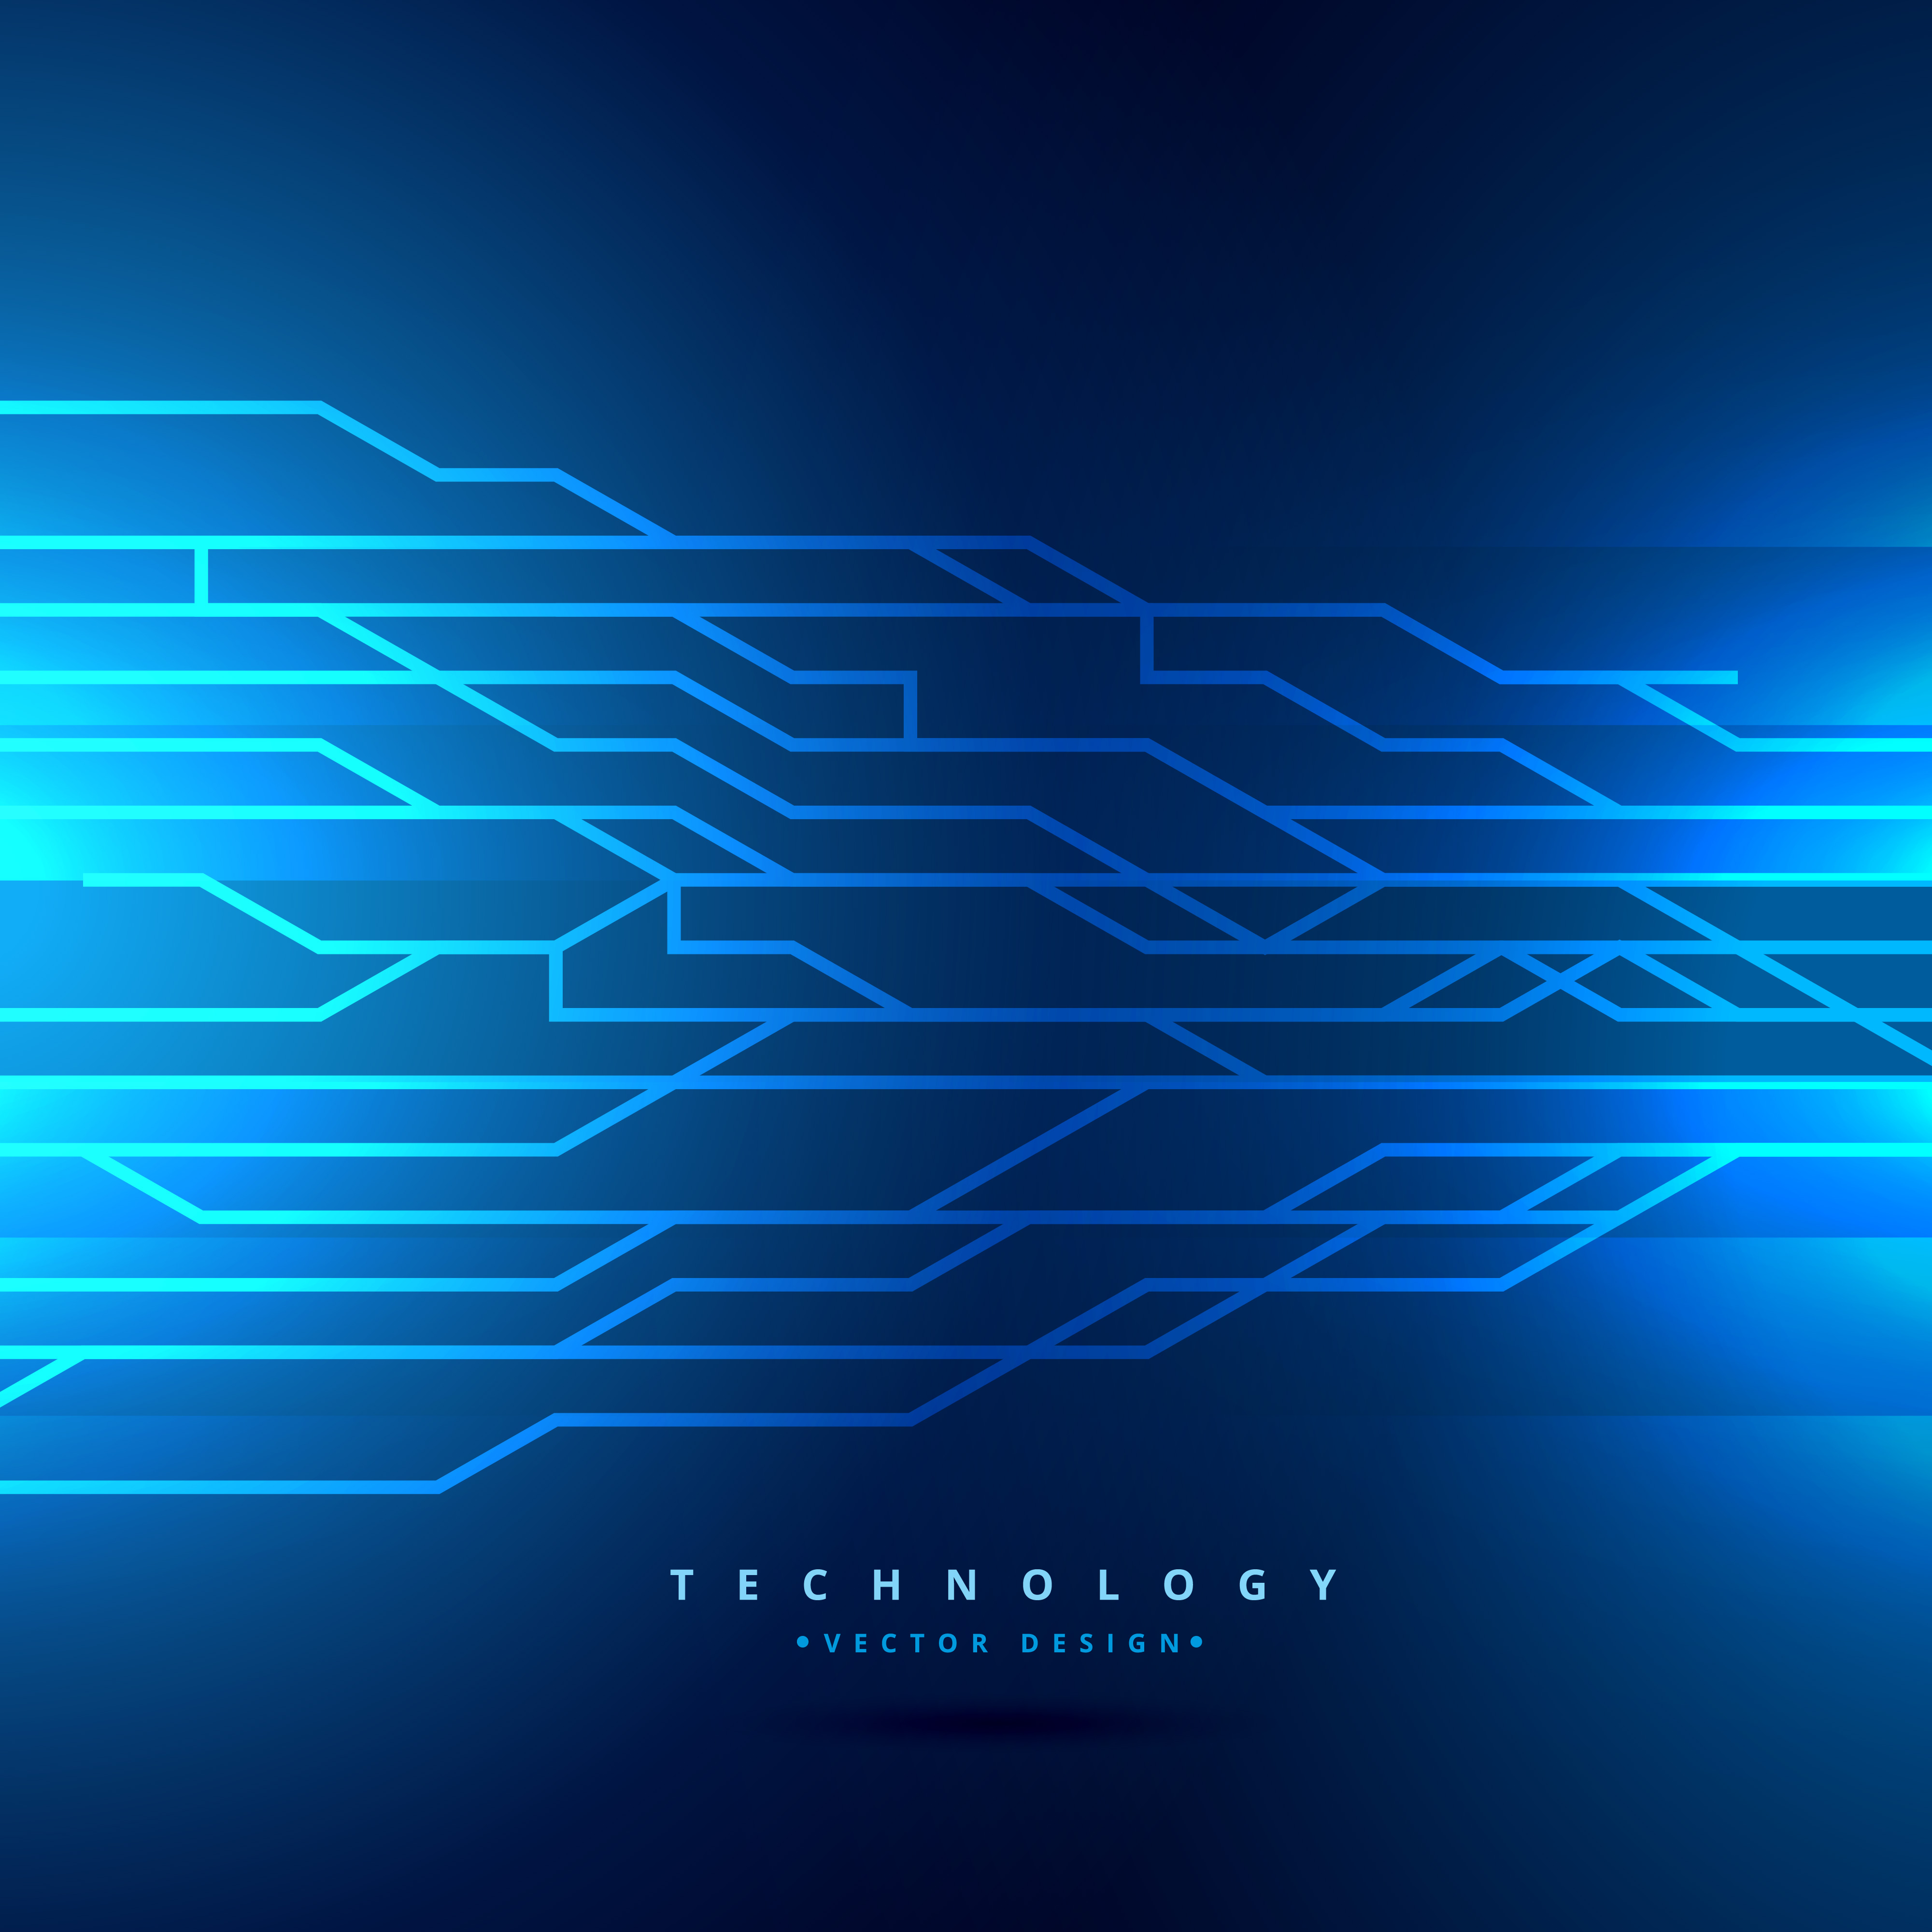 Digital Technology Style Background Vector Design